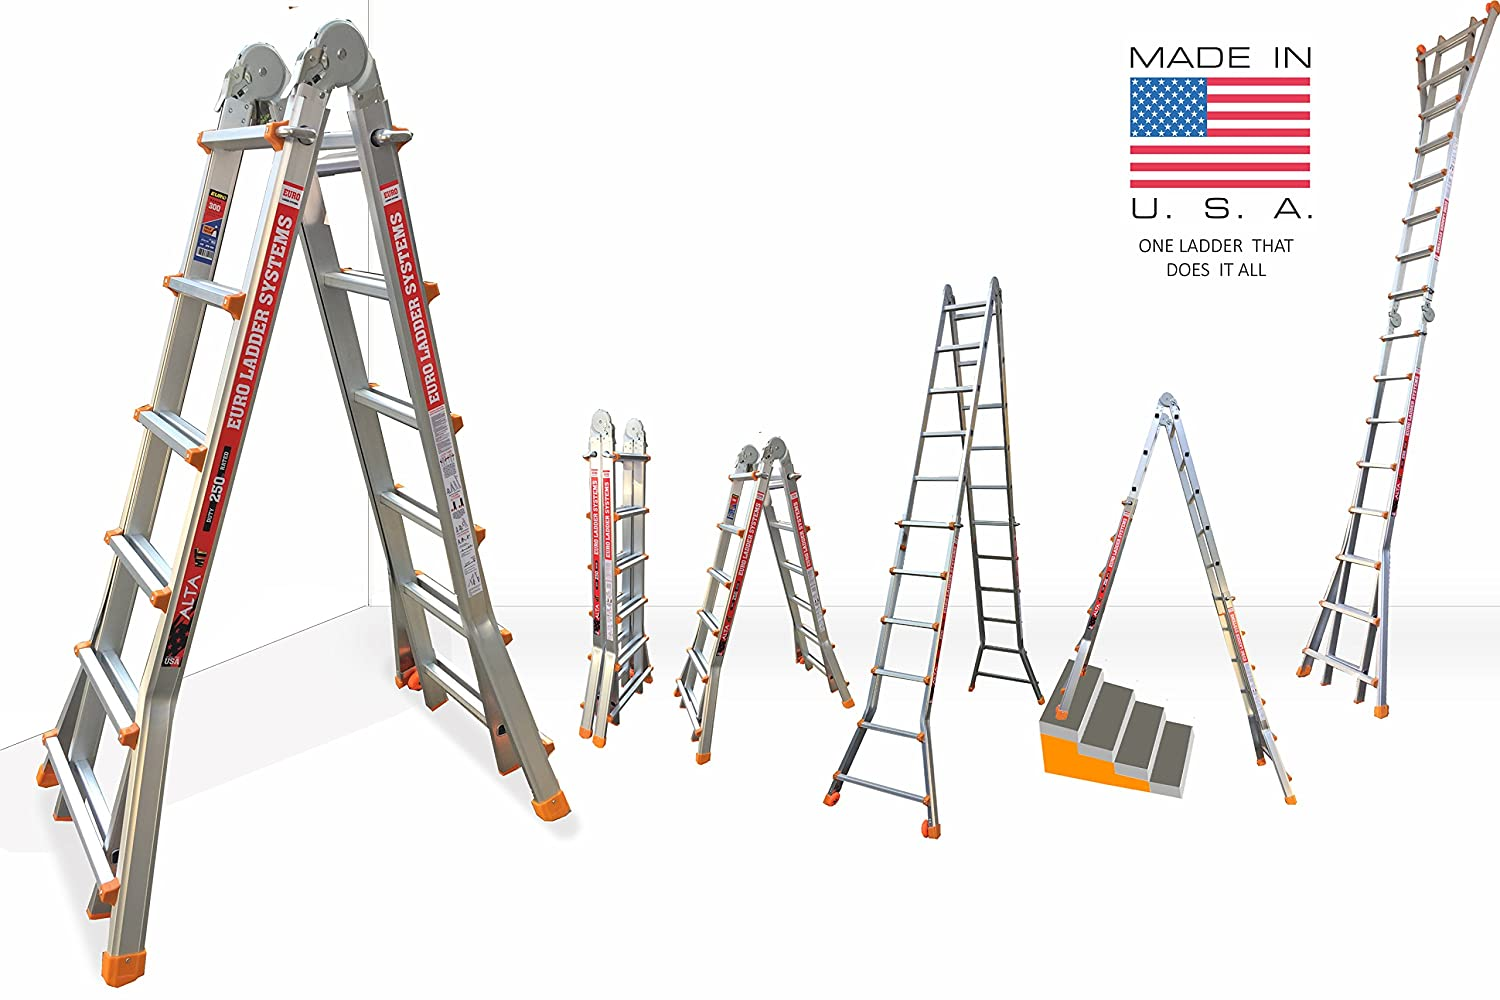 euro alta mt model 22 5ft to 20ft aluminium step ladder multi folding made in usa multi use 18 in 1 aframe wall support u0026 staircase ladder